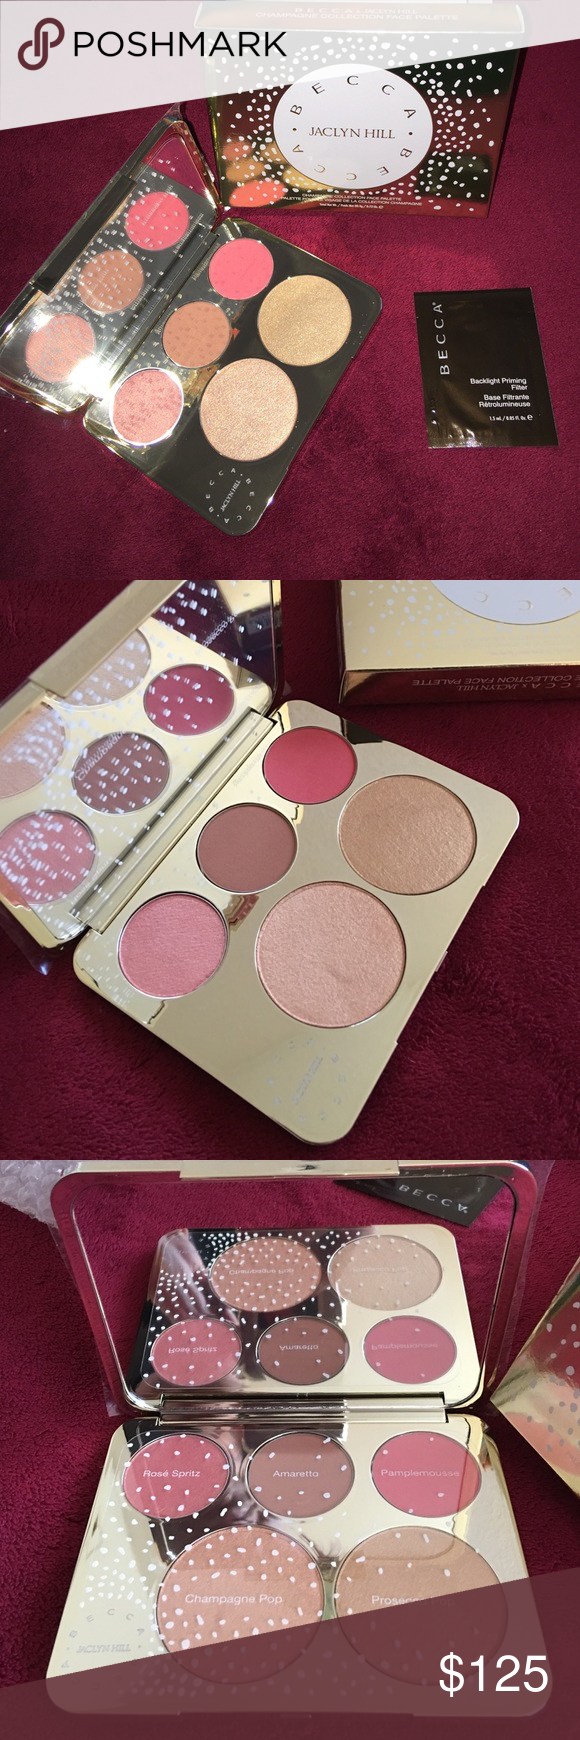 Becca Jaclyn Hill Champagne Pop Collection Palette Brand new in box. Never swatched. Please keep all pricing comments to your sassy self. Listed price is ONLY set for offers, I will also consider reasonable ️ payments. Realistically, I would like to make what I paid. I'm not interested in Kylie Lip Kits, Mac, or any other cosmetics so please, no trading inquiries. Will trade for Michael Kors, Kate spade, or like brand wallet/bag. Thanks ✨ BECCA Makeup Face Powder